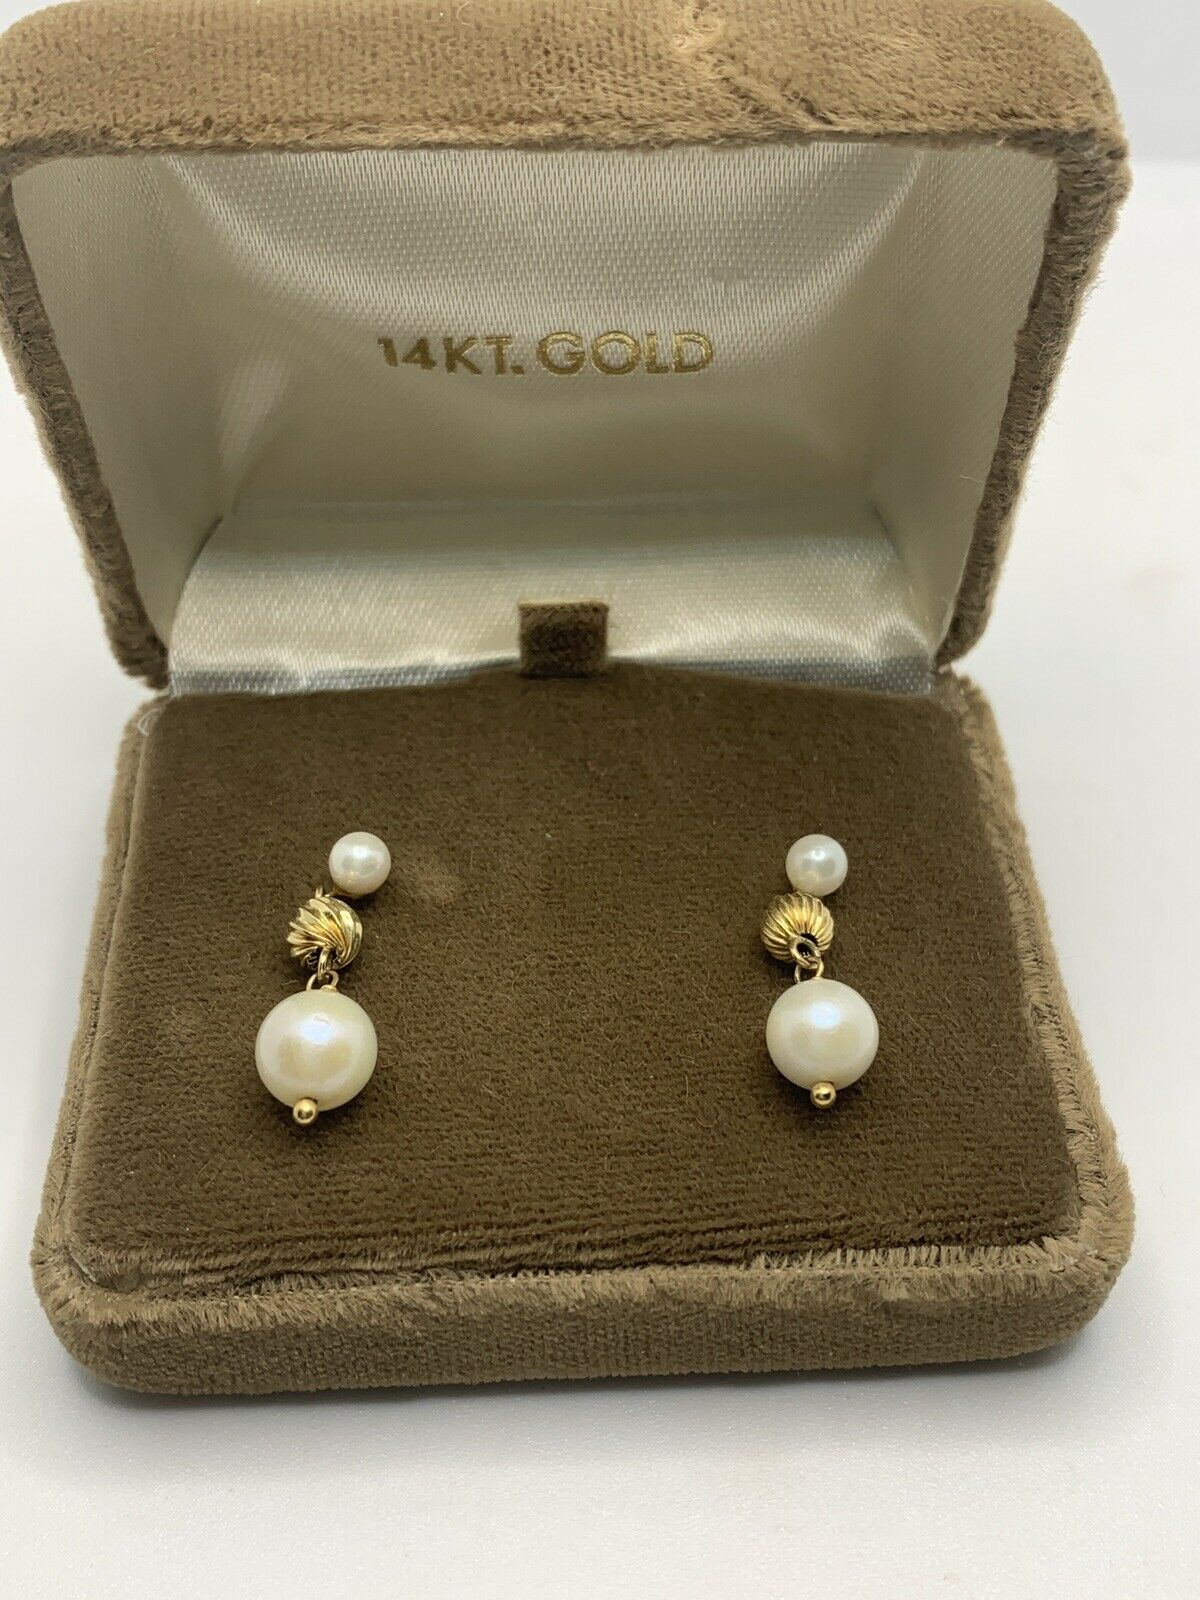 vintage 14k gold pearl and gold earrings - image 1